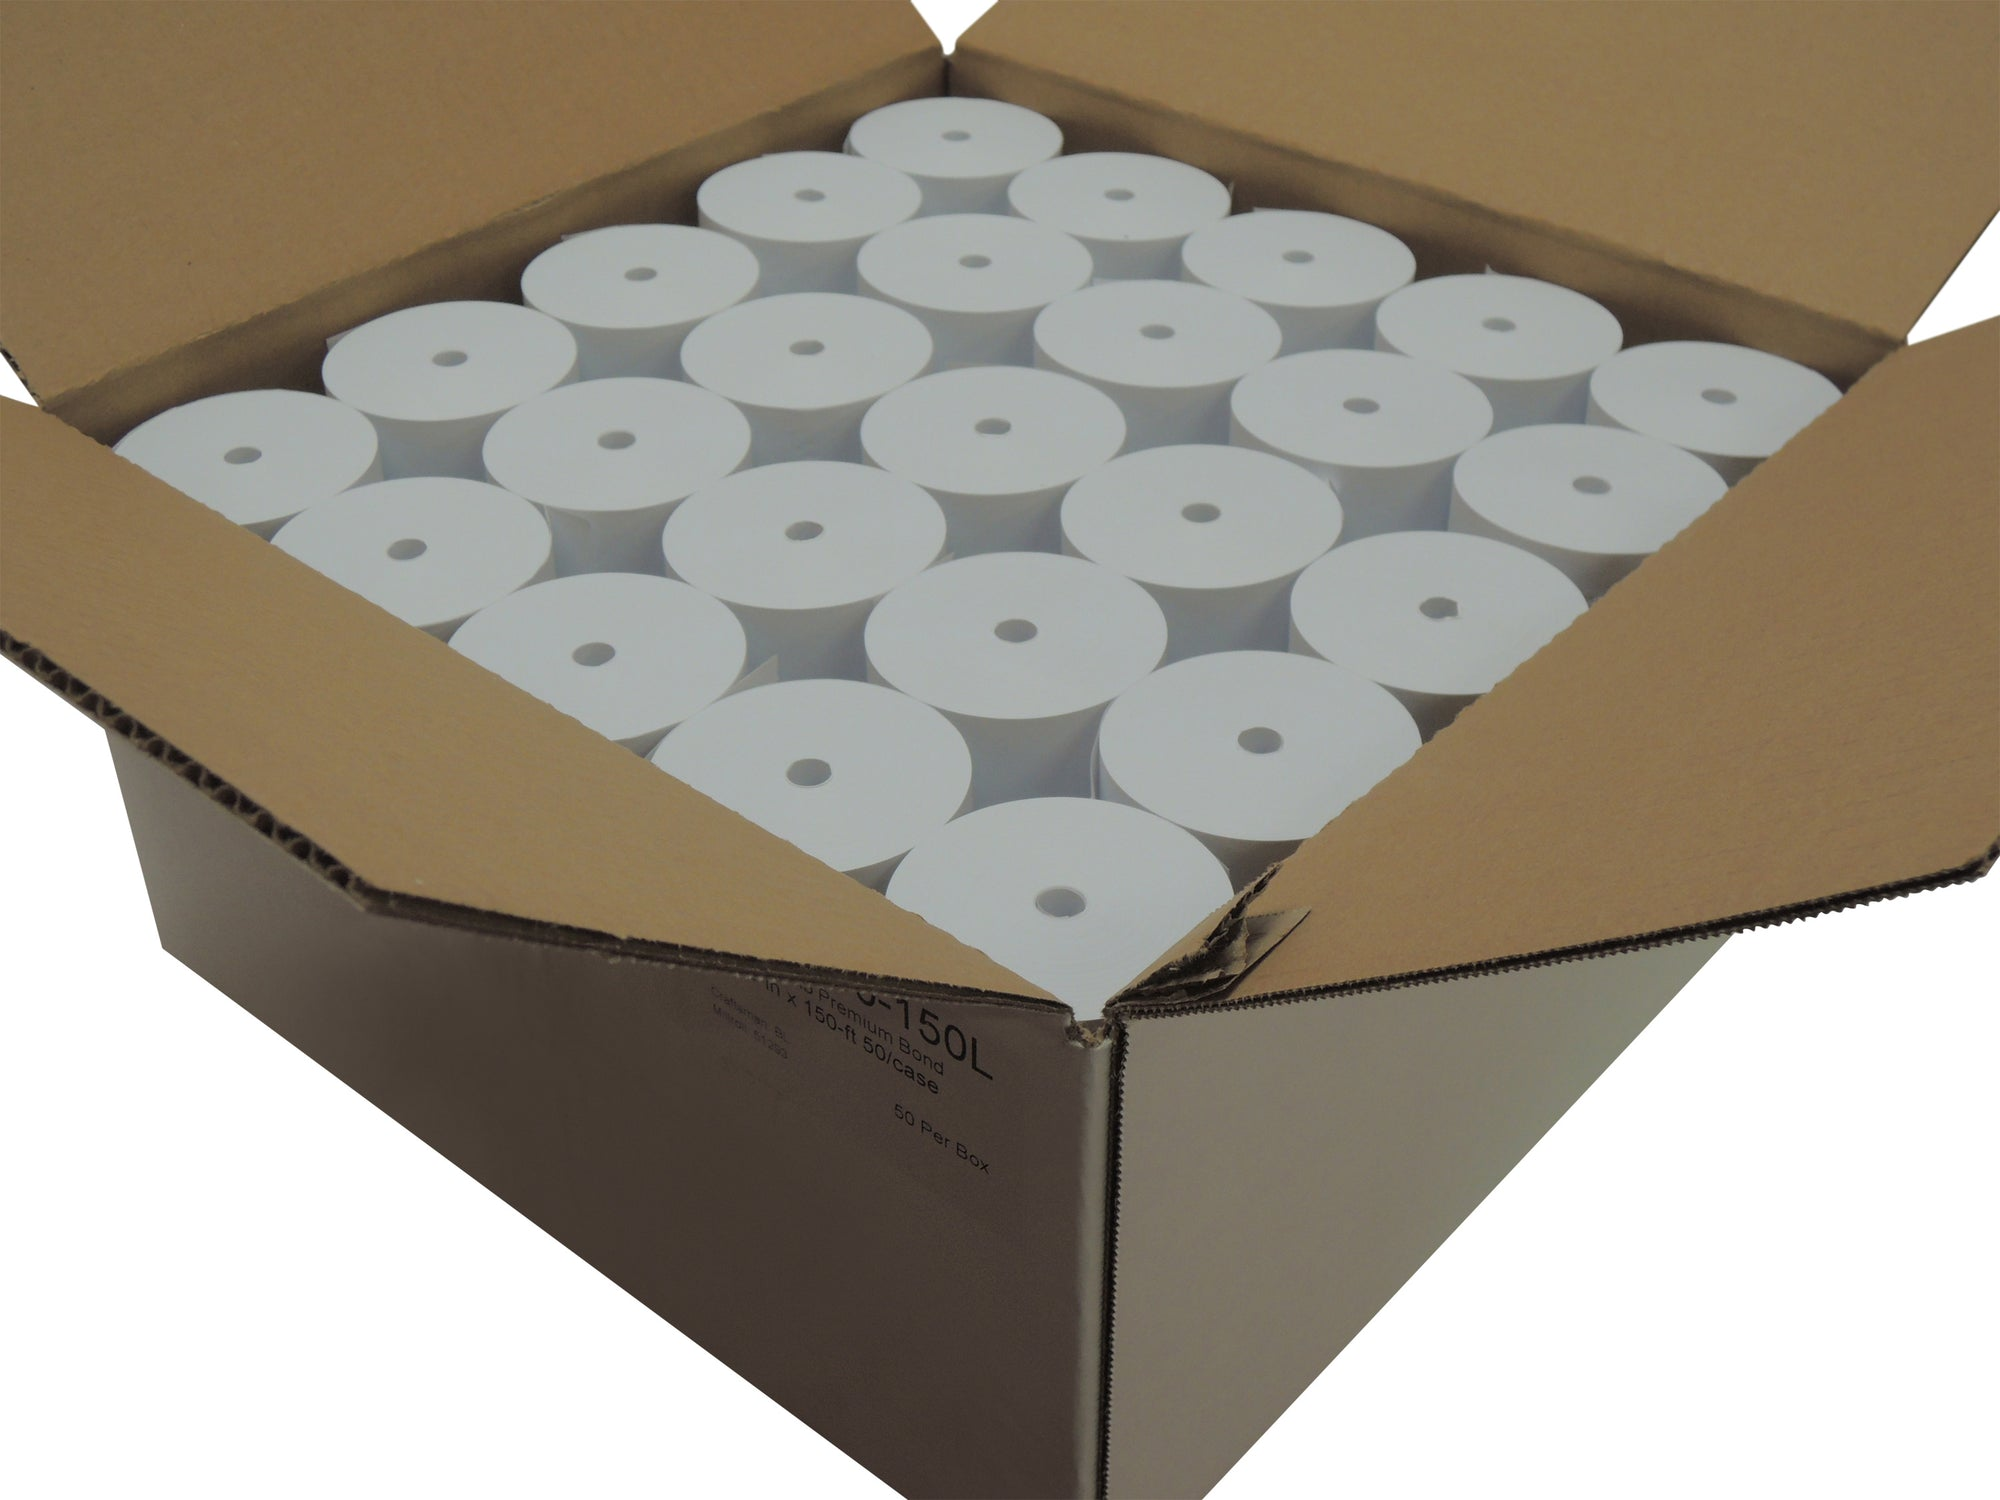 1 3/4 x 150 ft 1 Ply Bond bright white 50 rolls